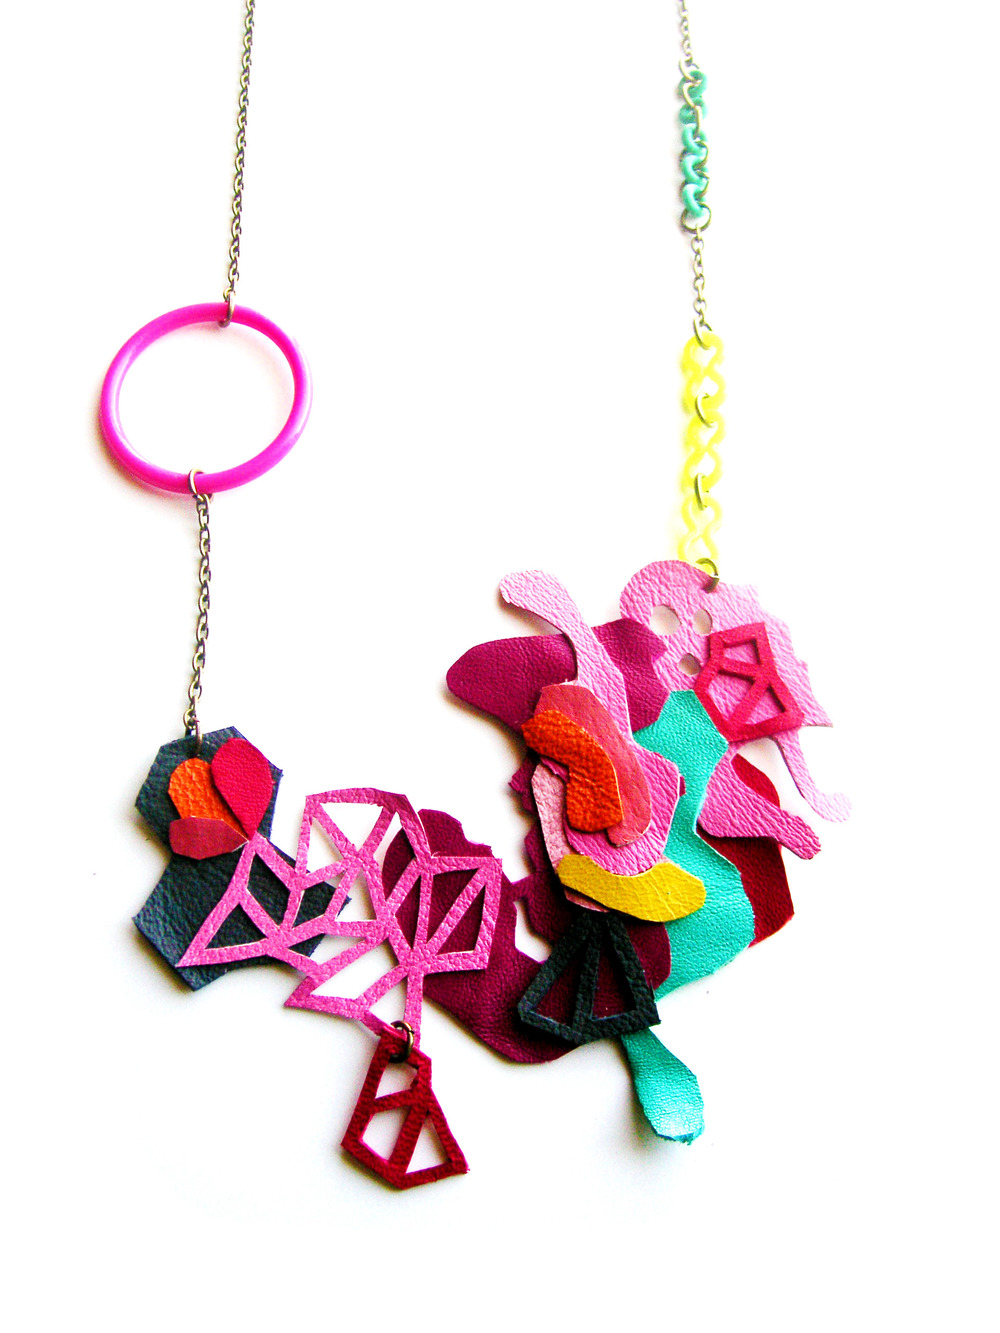 Geometric Necklace Triangle Color Block Art 2.jpg